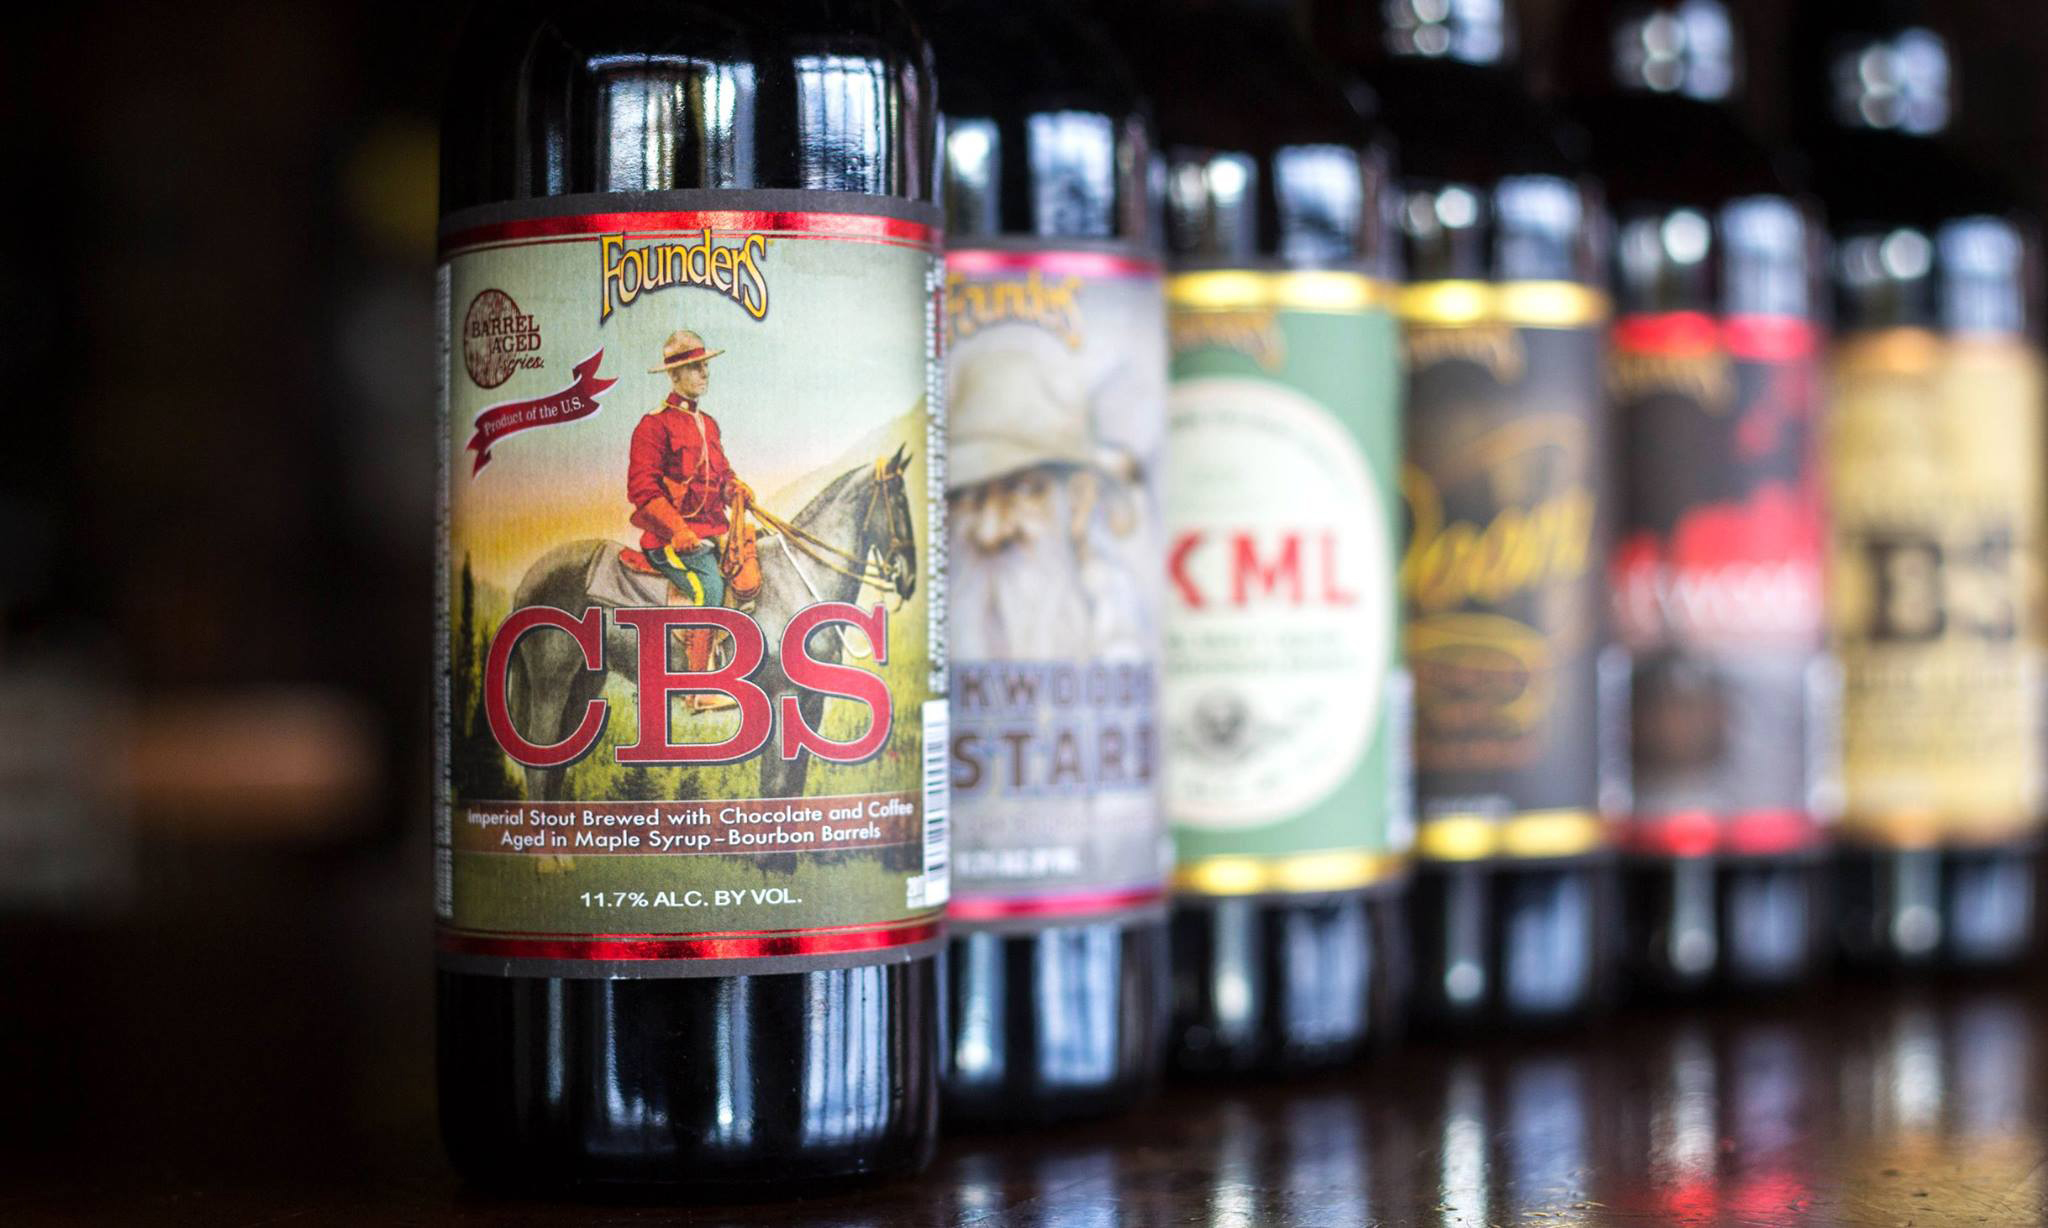 Founders releases CBS.